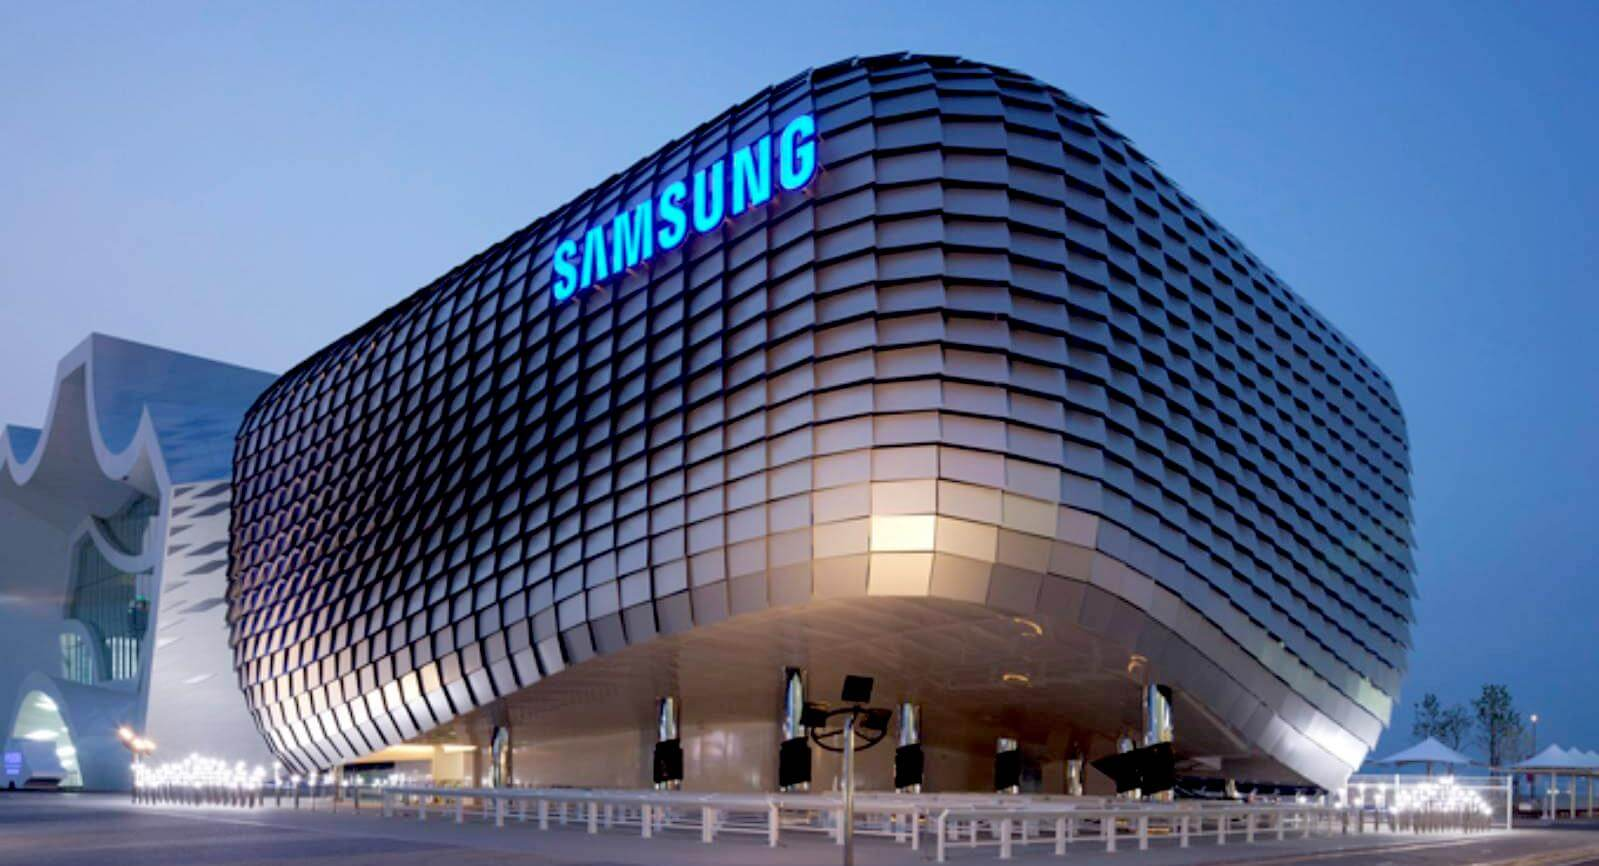 Samsung shows off new roadmap with fabrication down to 3nm